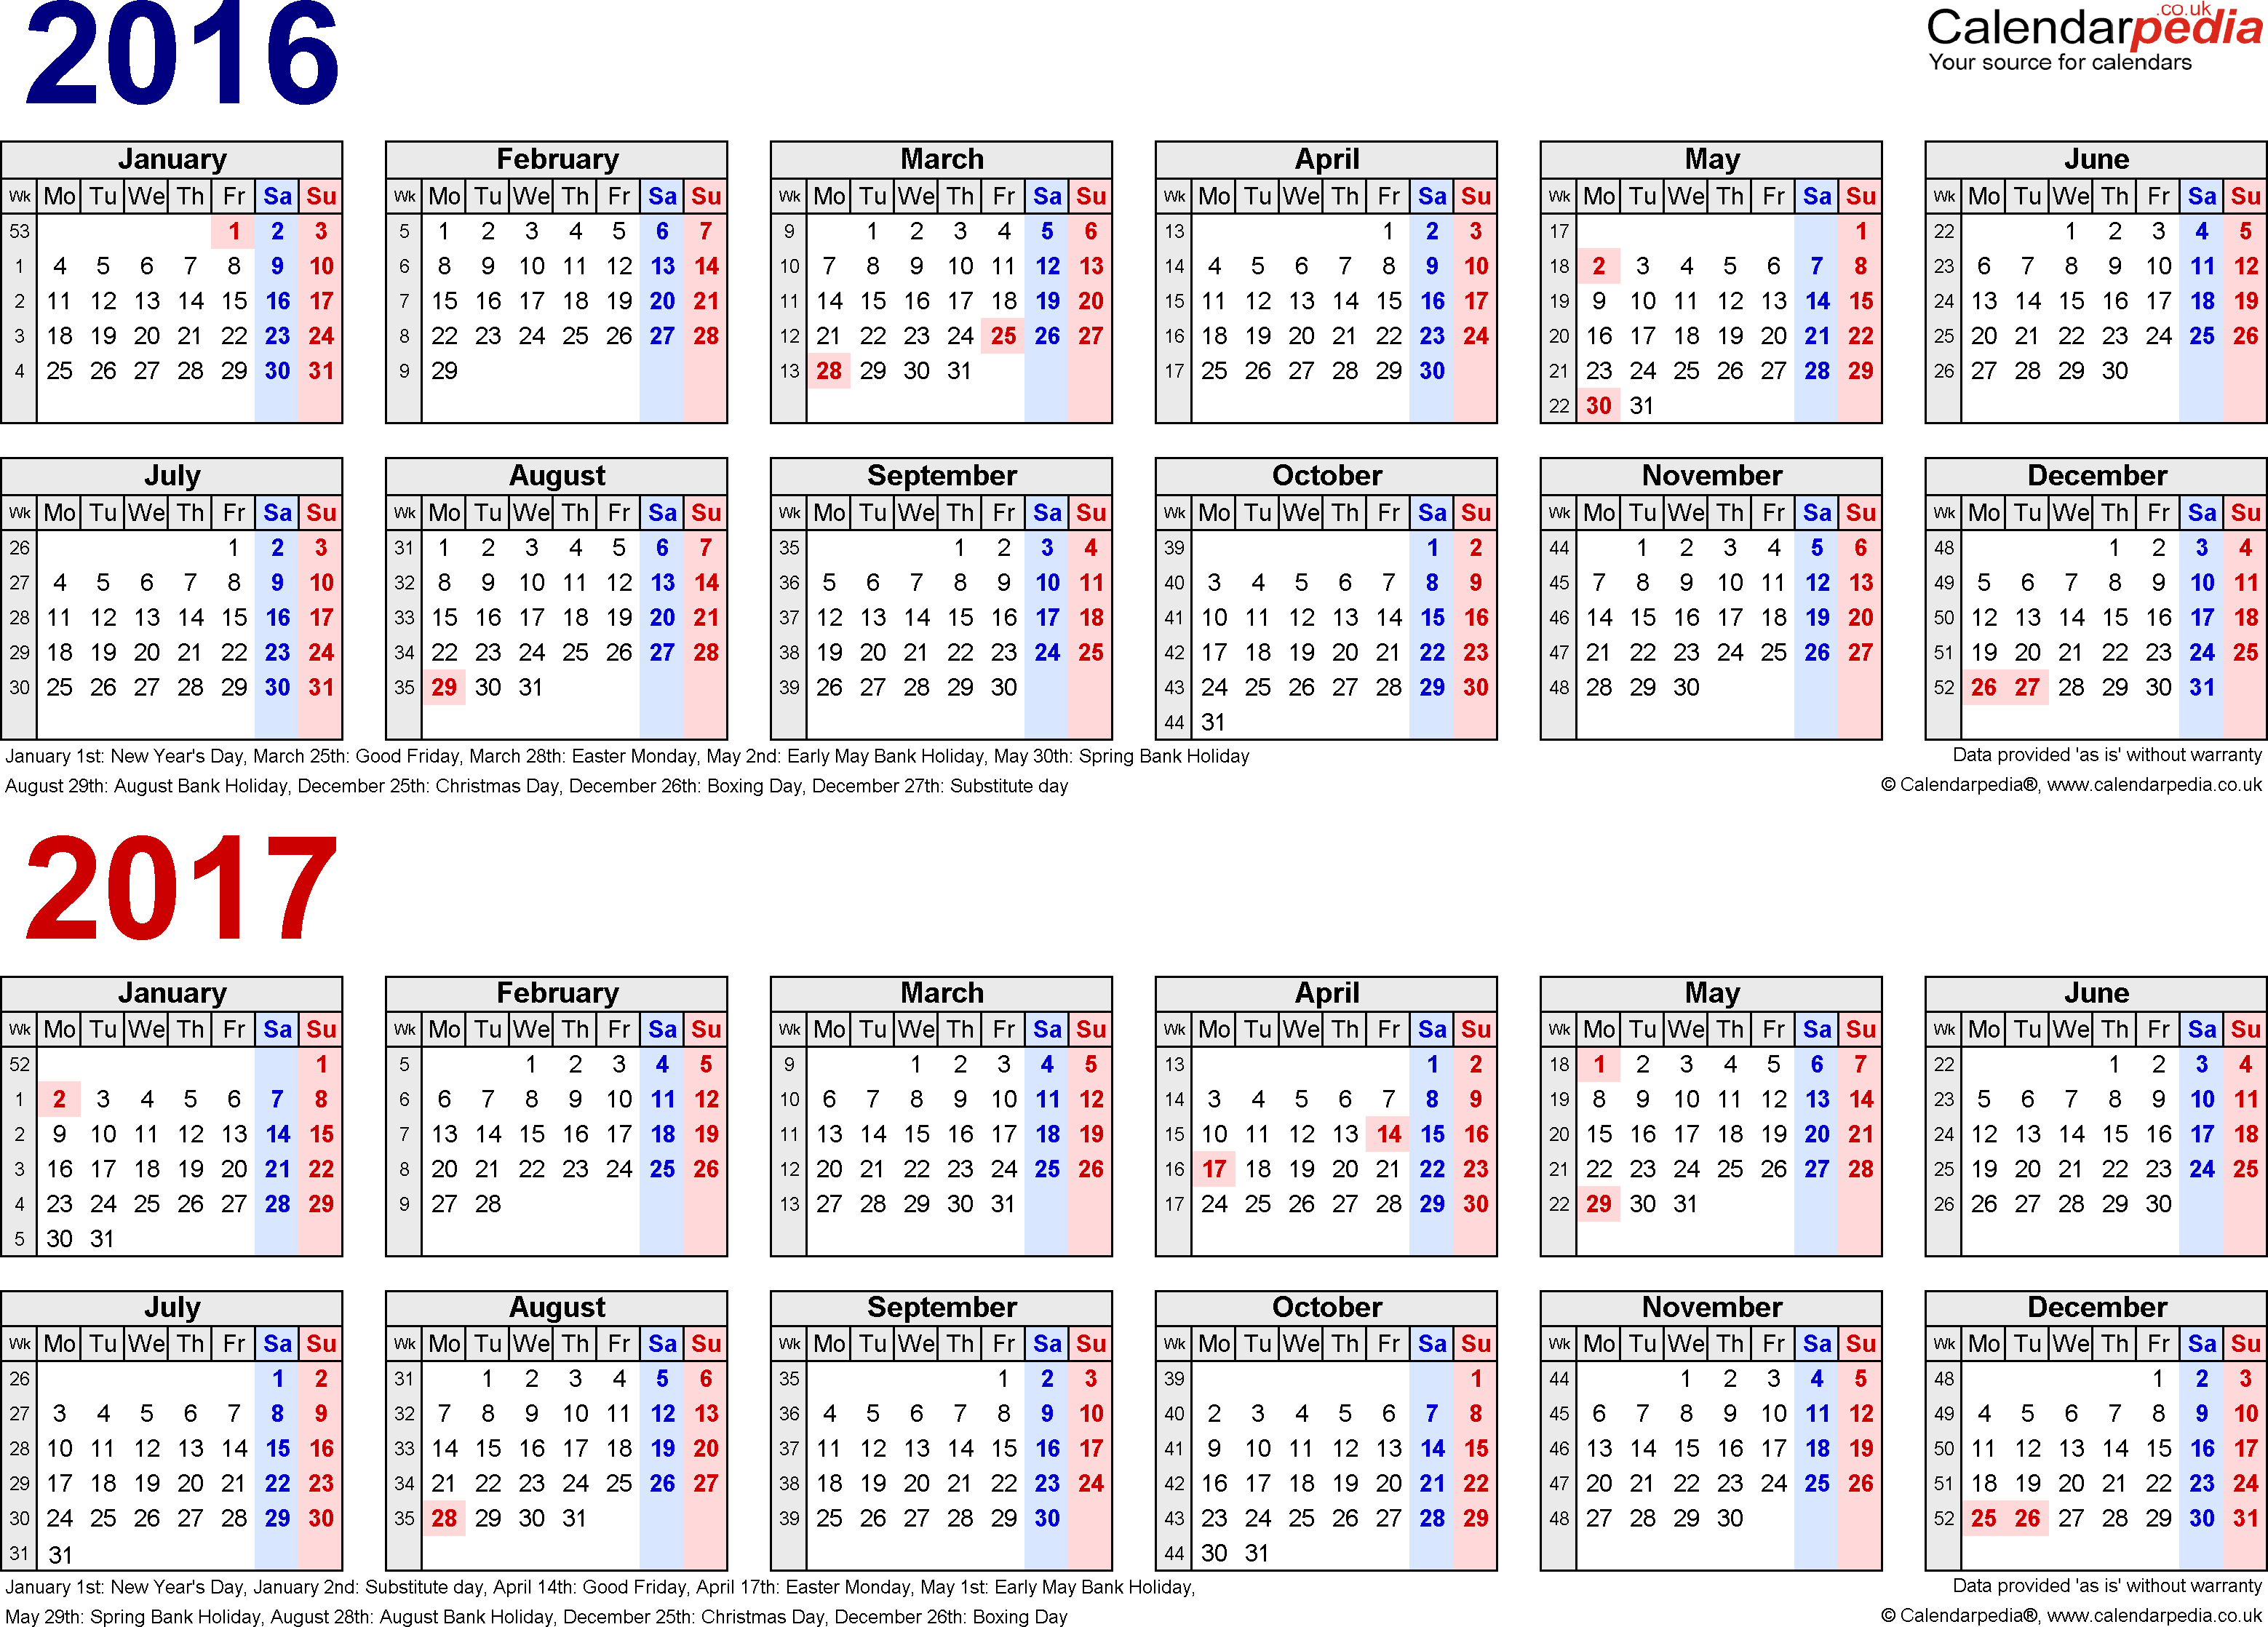 Template 1: Excel template for two year calendar 2016/2017 in blue/red (landscape orientation, 1 page, A4)